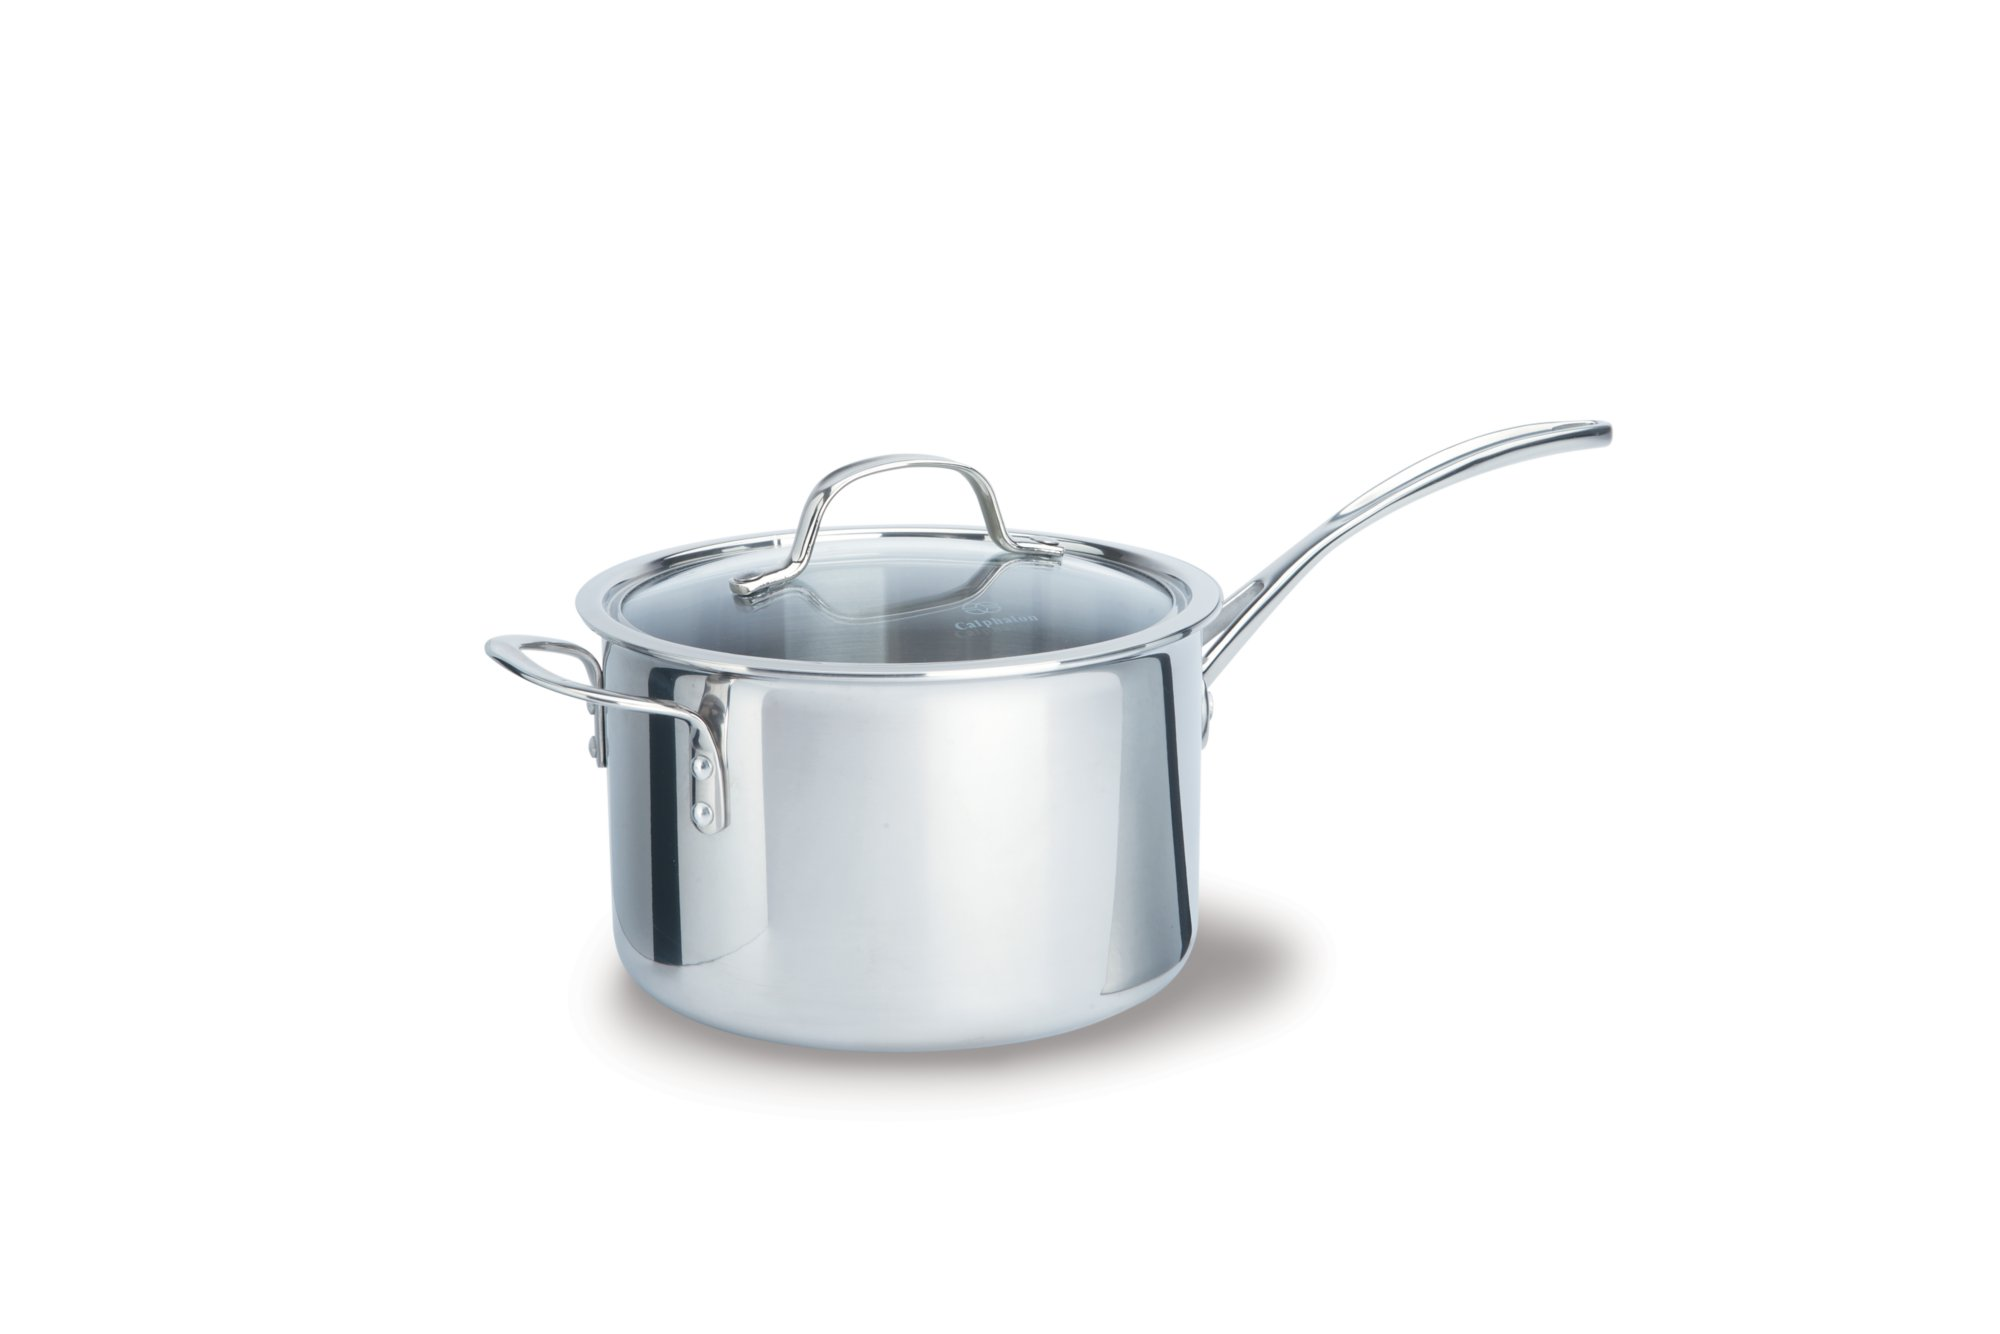 Calphalon Tri-Ply Stainless Steel 4.5-qt. Sauce Pan with Cover